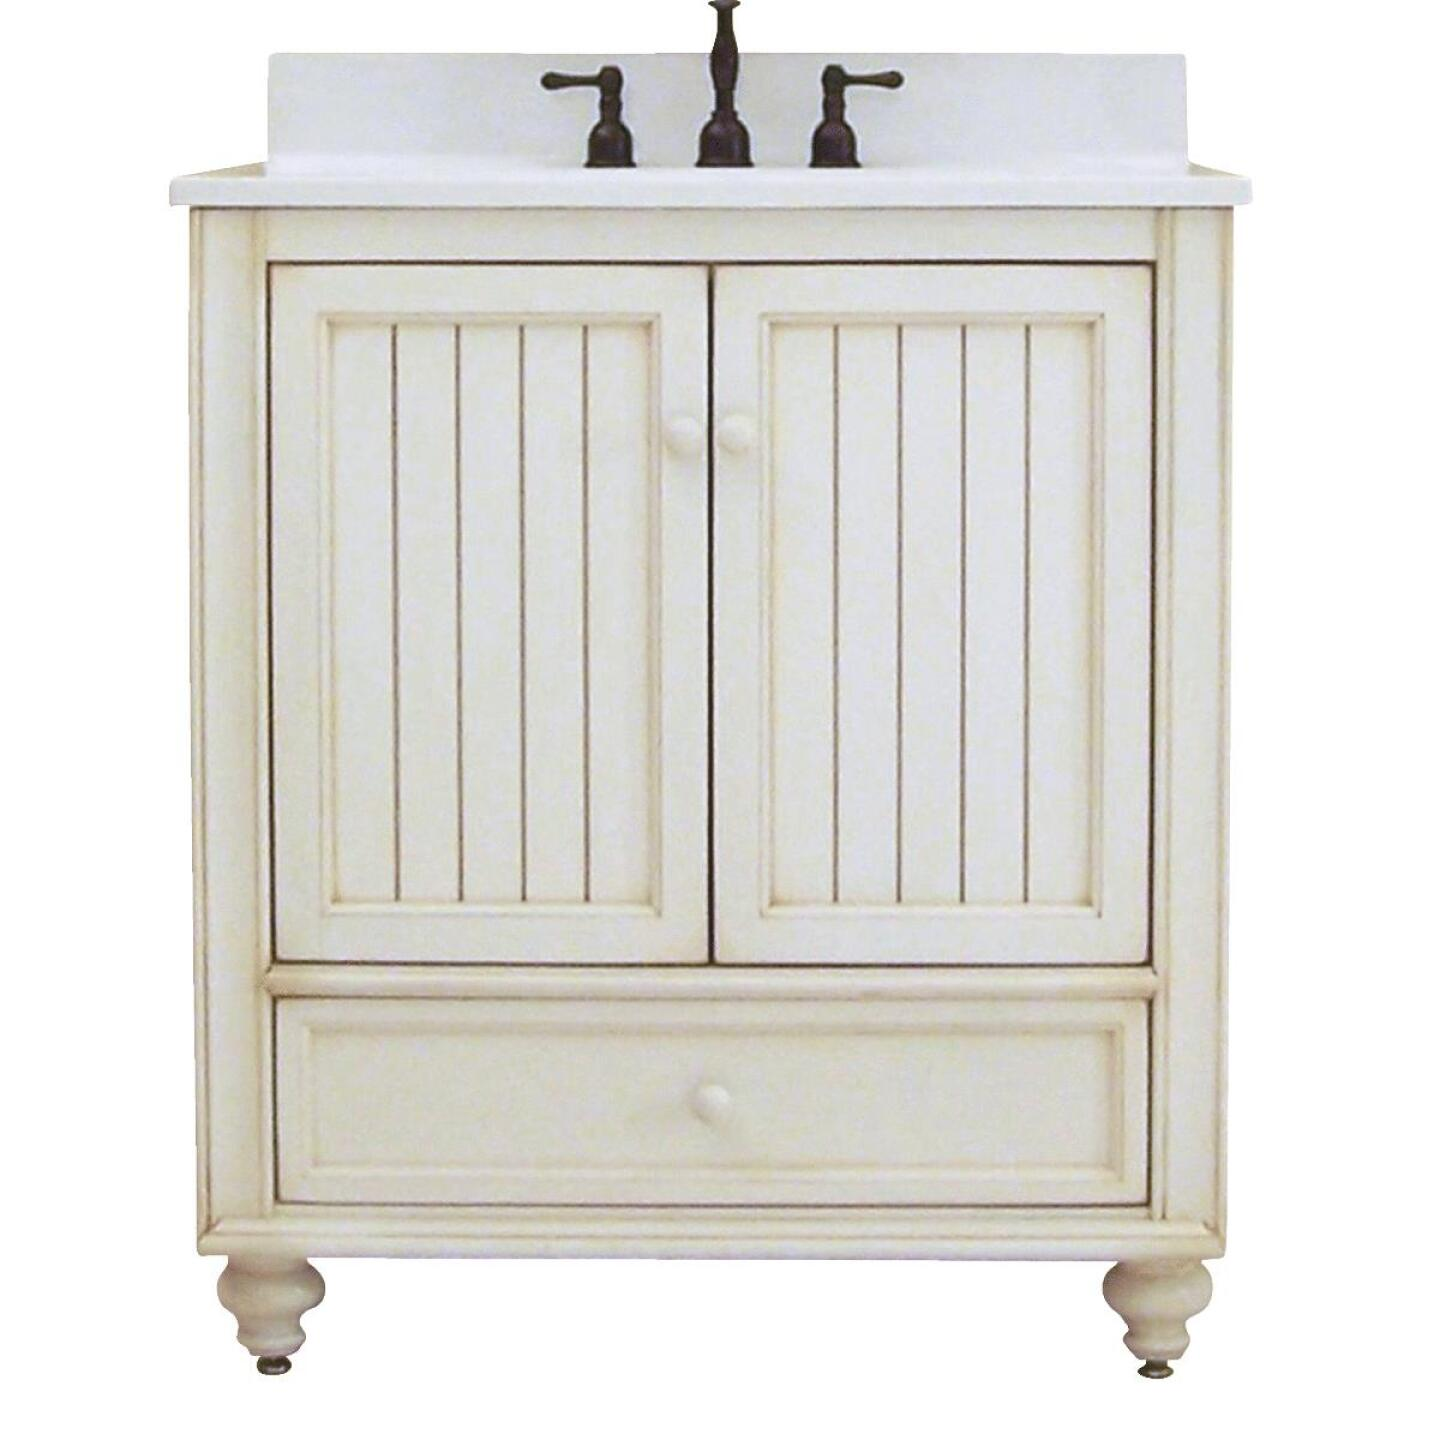 Sunny Wood Bristol Beach White 30 In. W x 34 In. H x 21 In. D Vanity Base, 2 Door/1 Drawer Image 1